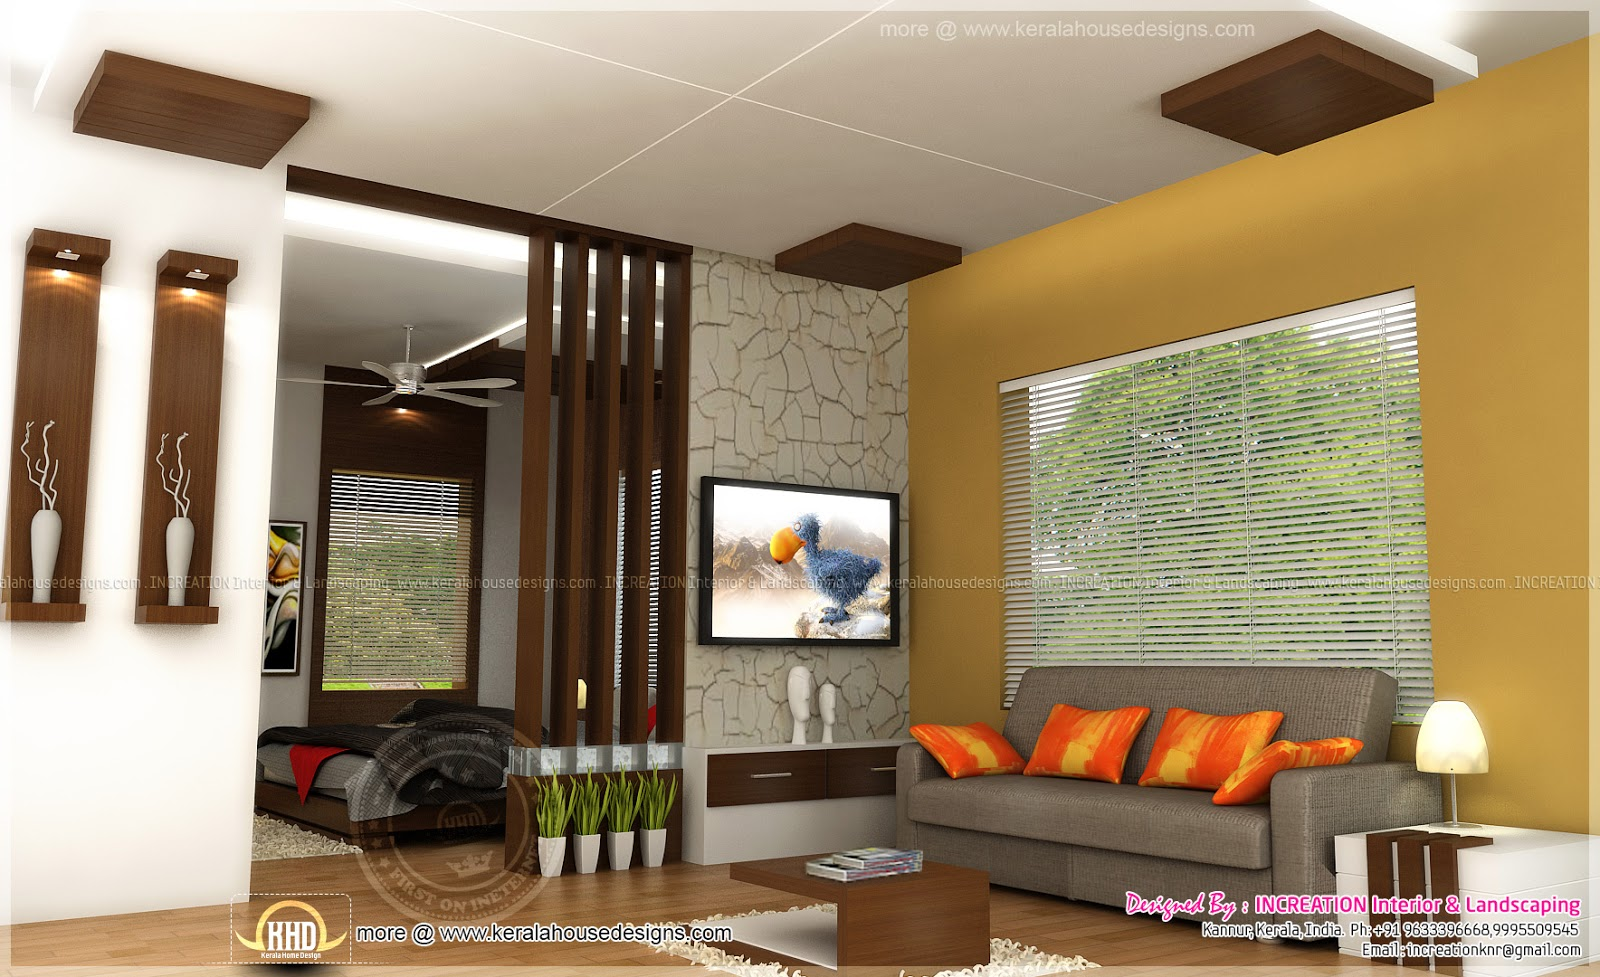 Interior designs from kannur kerala home kerala plans for Designs of interior living rooms